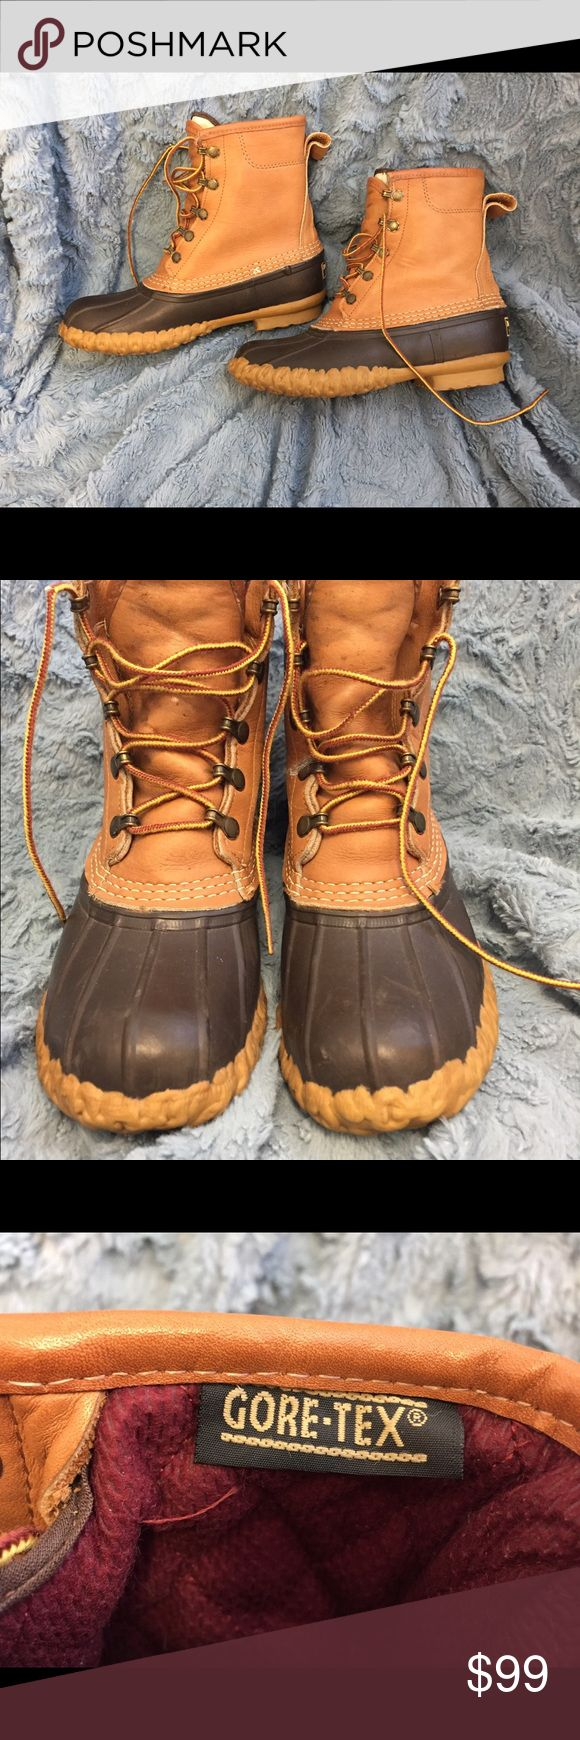 L L Bean Women's Duck Boots - Gore Tex Lined Classic LL Bean Lace-up Duck Boots with Gore Tex lining.  Stay warm and dry this season.  Hard to find, backordered at Bean's! LL Bean Shoes Winter & Rain Boots